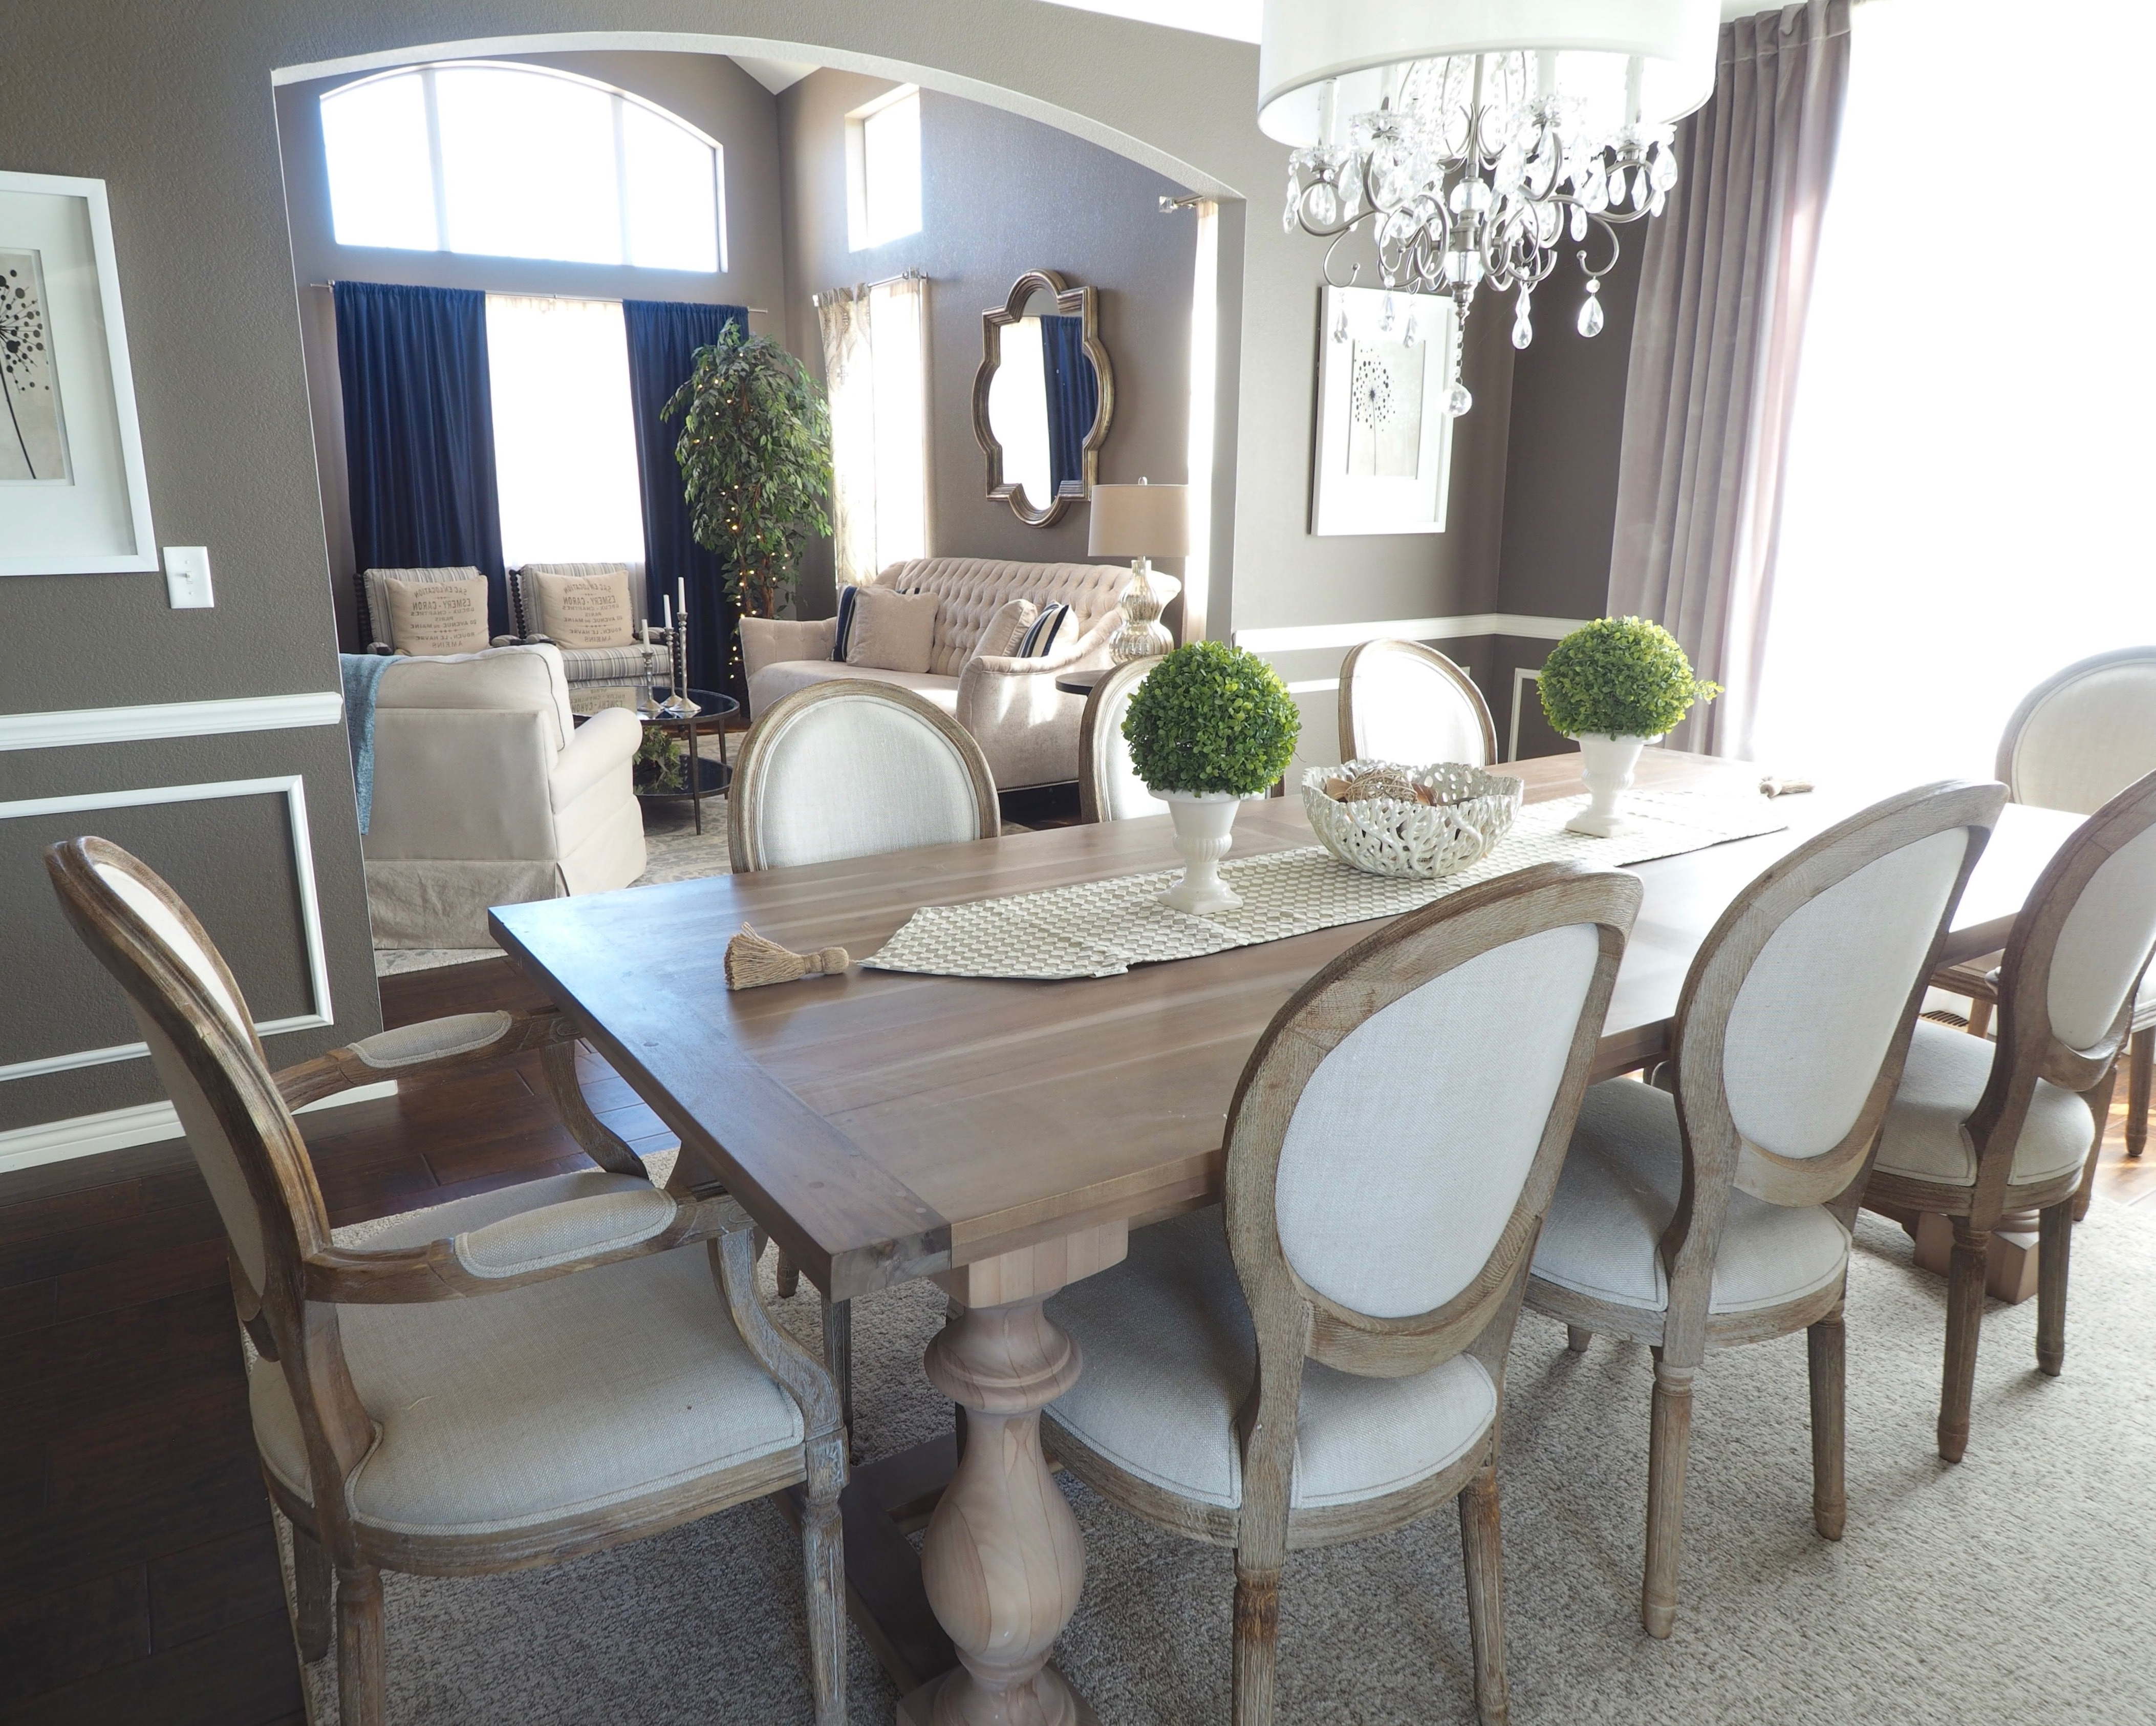 Glam Dining Room Vintage Dining Room – Rustic Dining Room Intended For 2017 Caira 9 Piece Extension Dining Sets With Diamond Back Chairs (View 7 of 25)